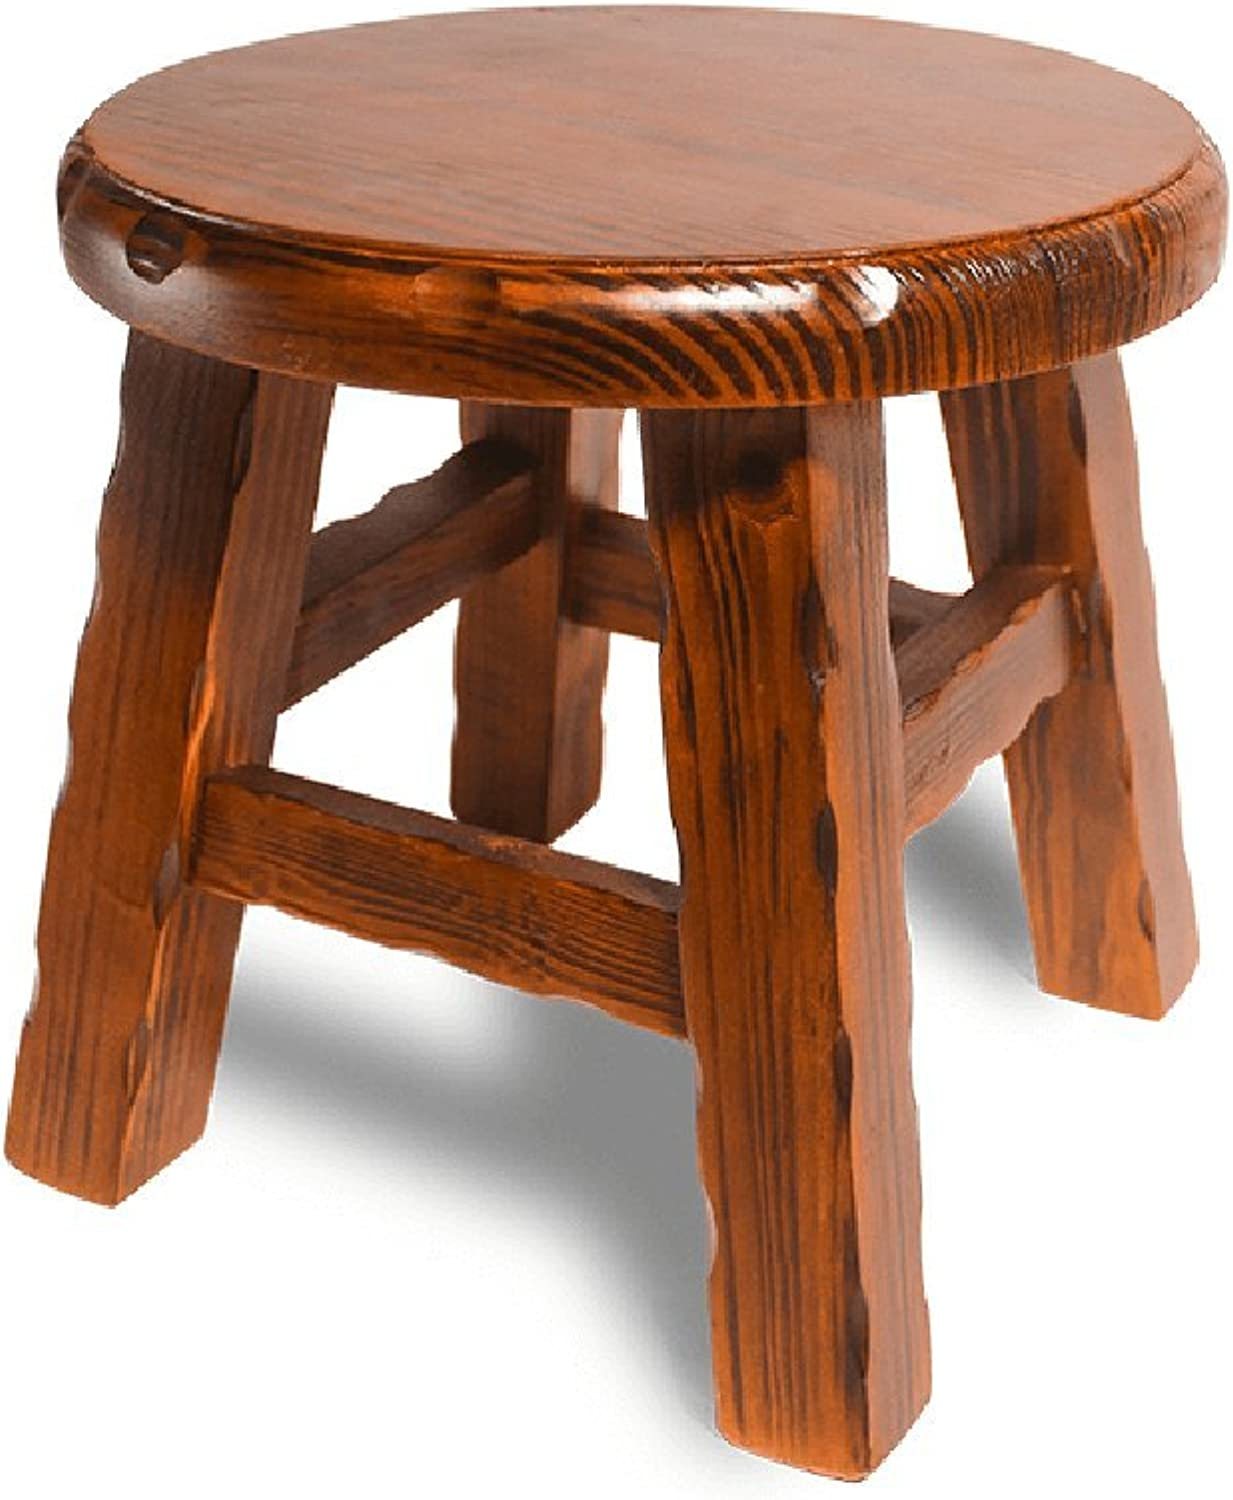 Solid Wood Stool Tea Table Stool Small Bench Household Wood Stool Fashion shoes Bench Wooden Stool